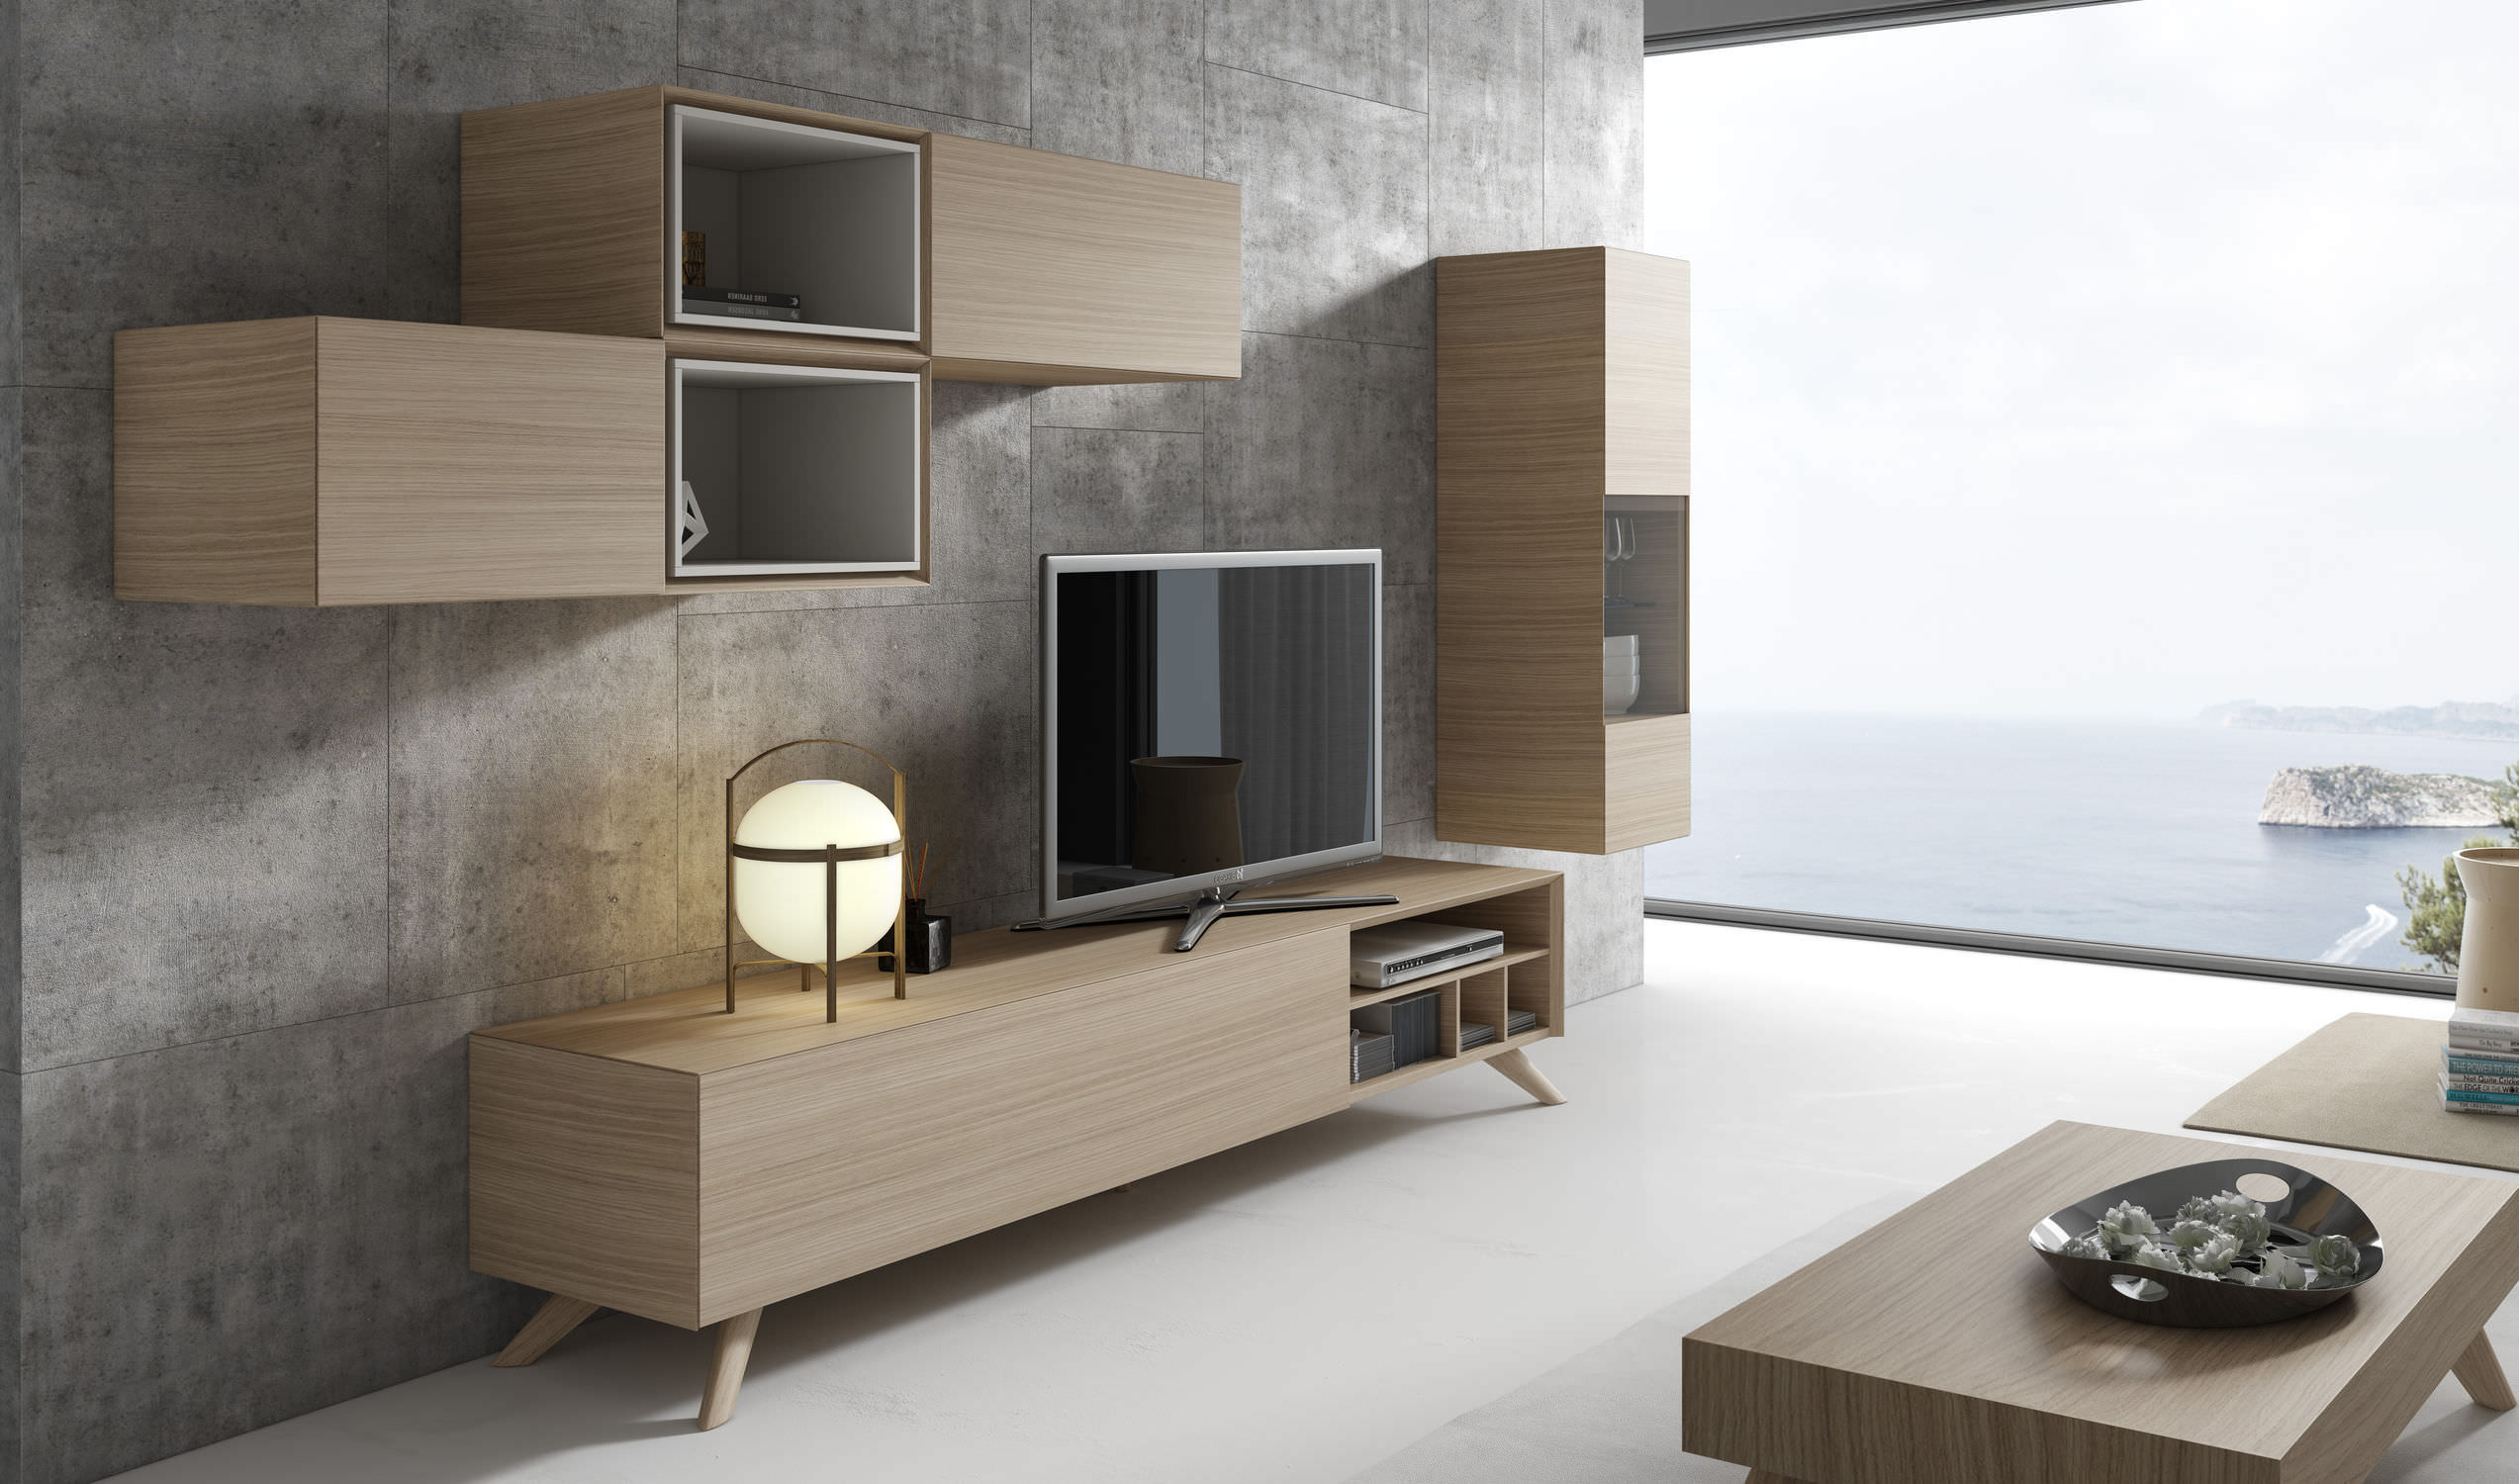 Ensemble Mural Tv Contemporain En Bois Ginza 309 A Brito # Meuble Tv Architecte